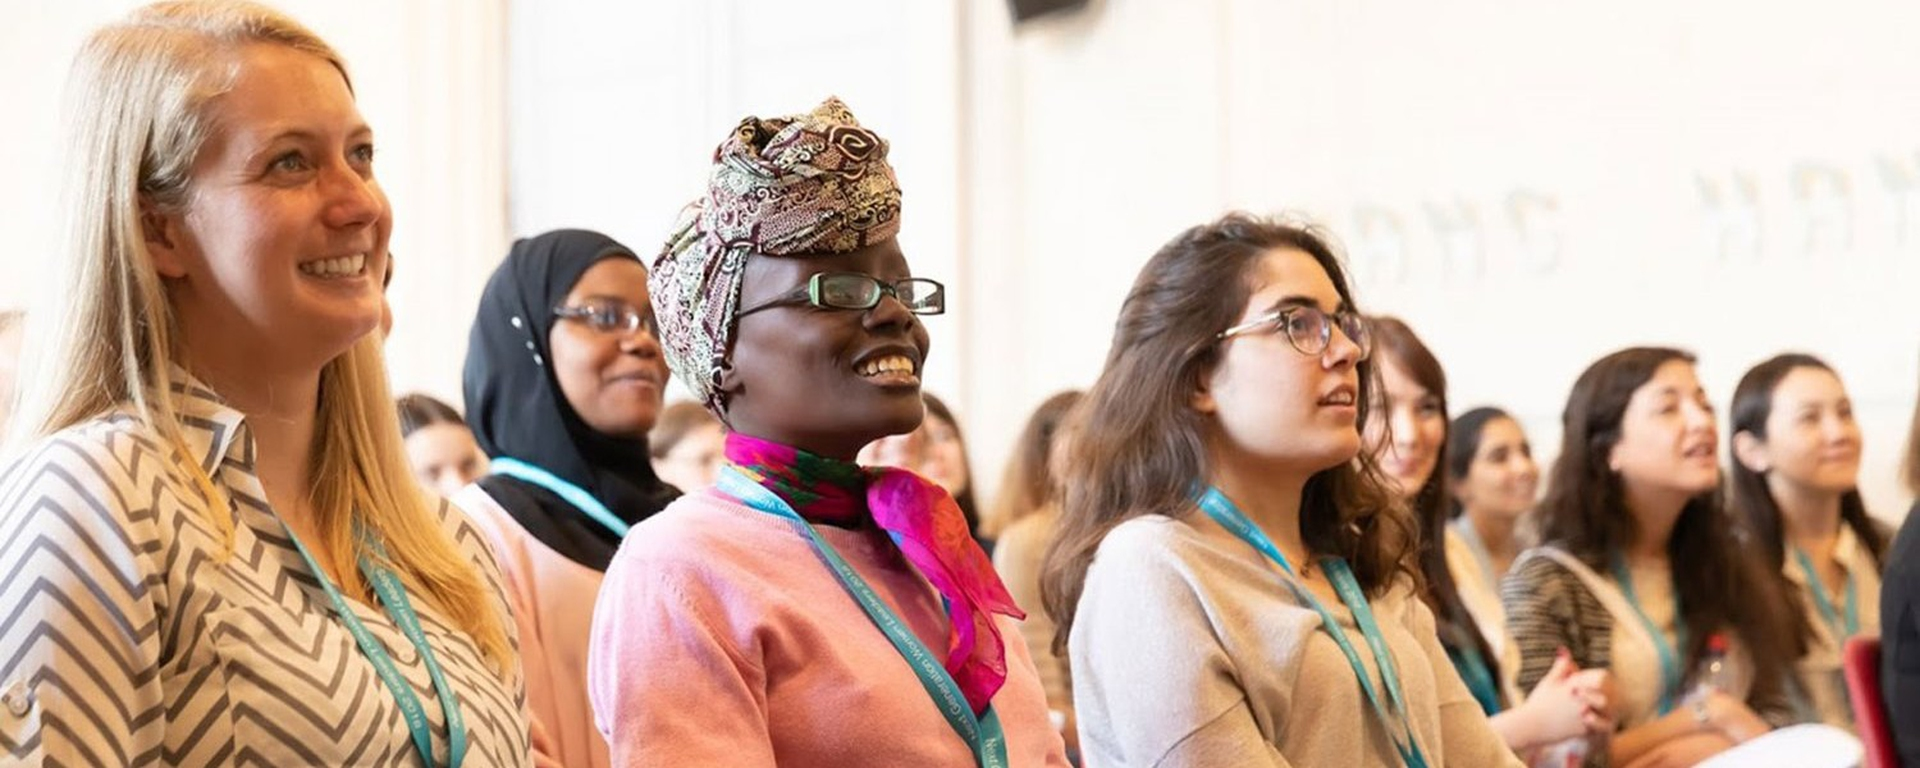 McKinsey & Company - Next Generation Women Leaders Event 2020 Movemeback African initiative cover image